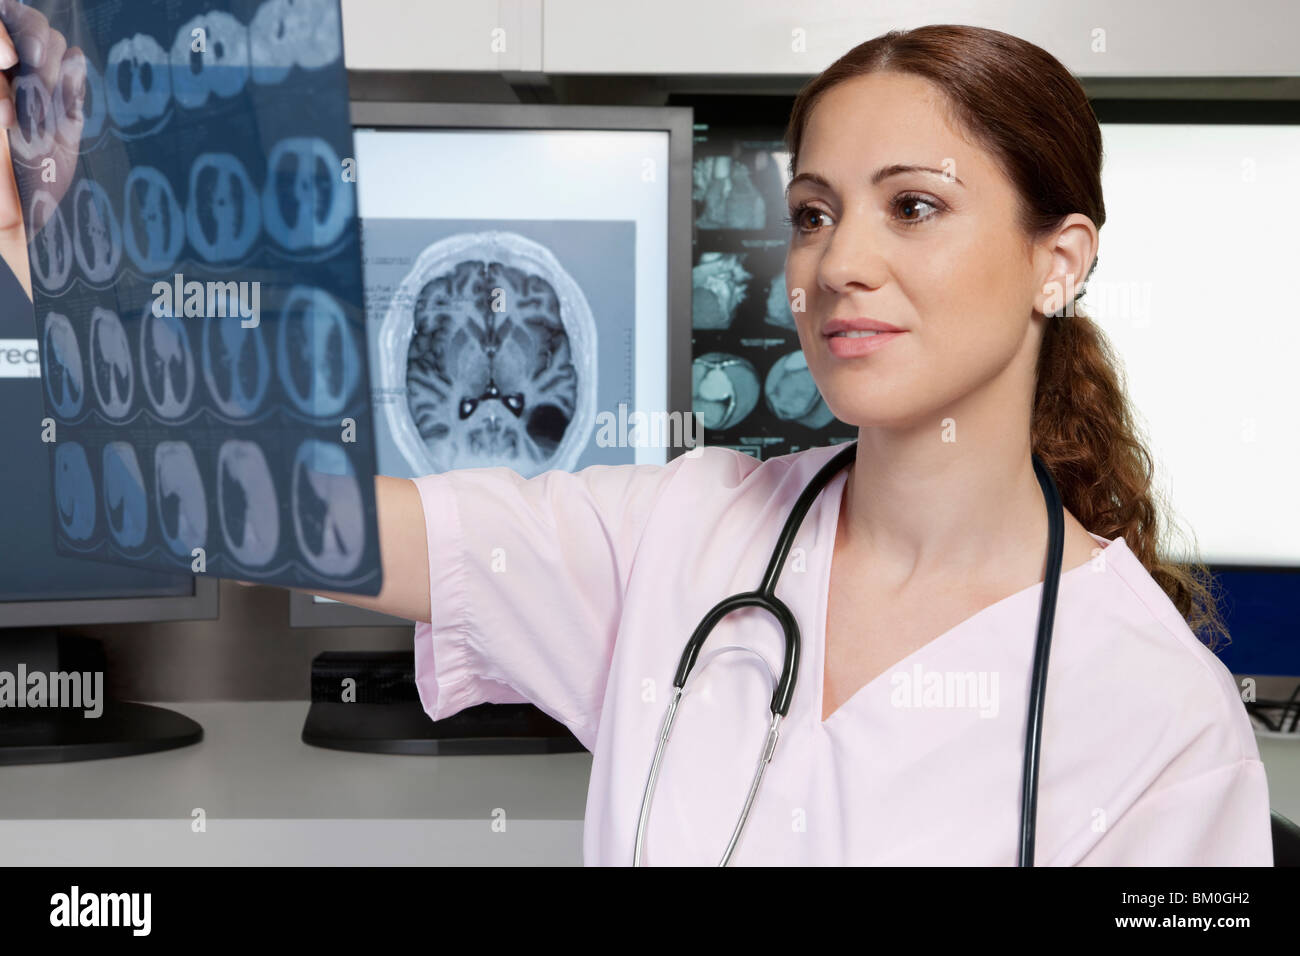 Female doctor examining an x-ray report - Stock Image